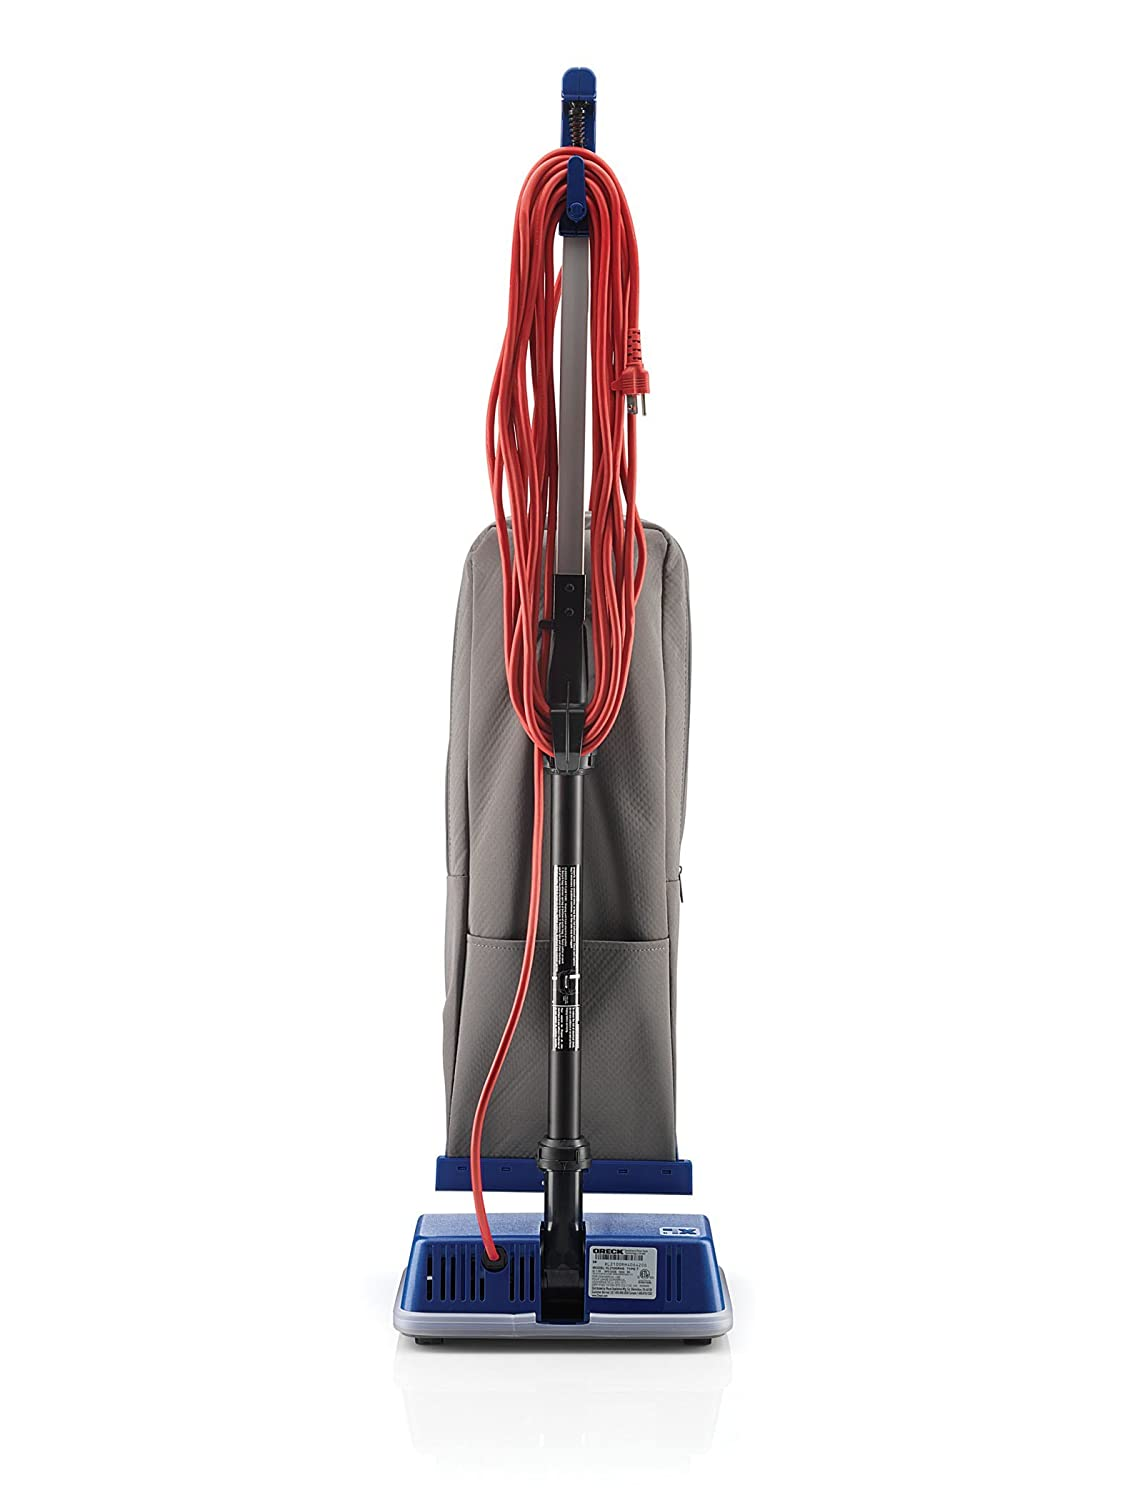 Oreck Commercial XL Upright Vacuum Cleaner XL2100RHS Household Vacuums Amazon Industrial Scientific